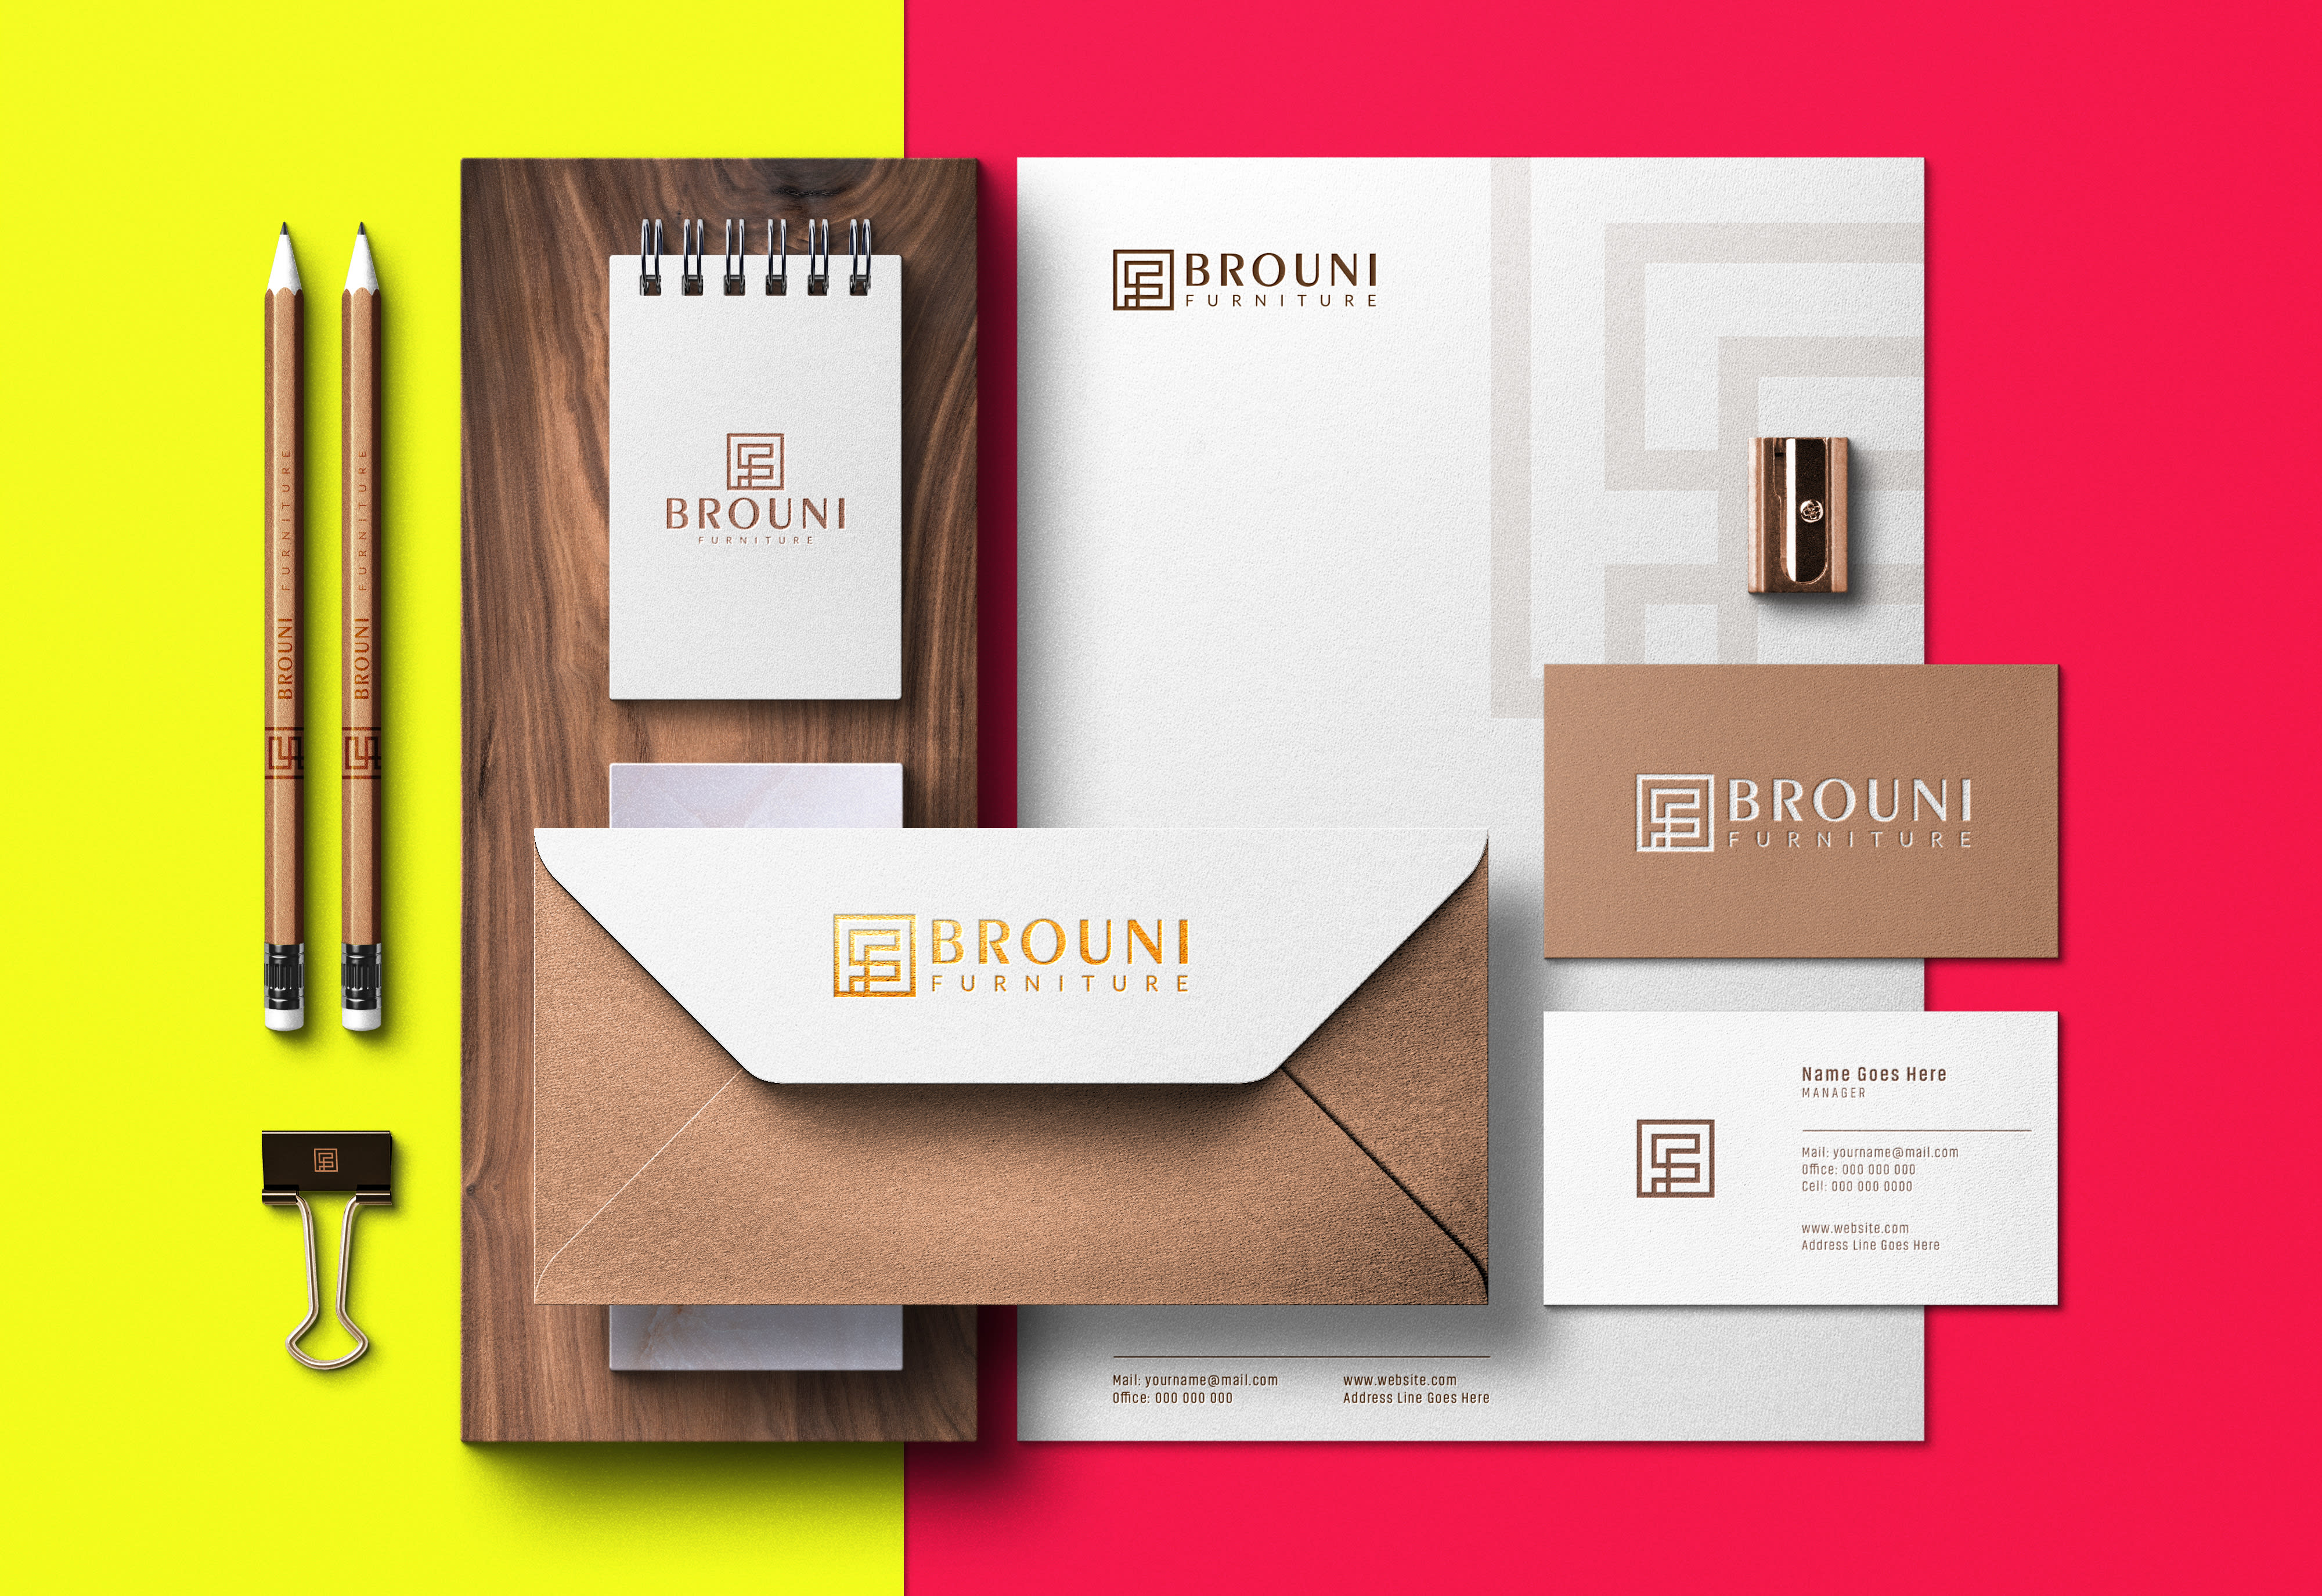 I will design your logo and brand style guide to catch your eye